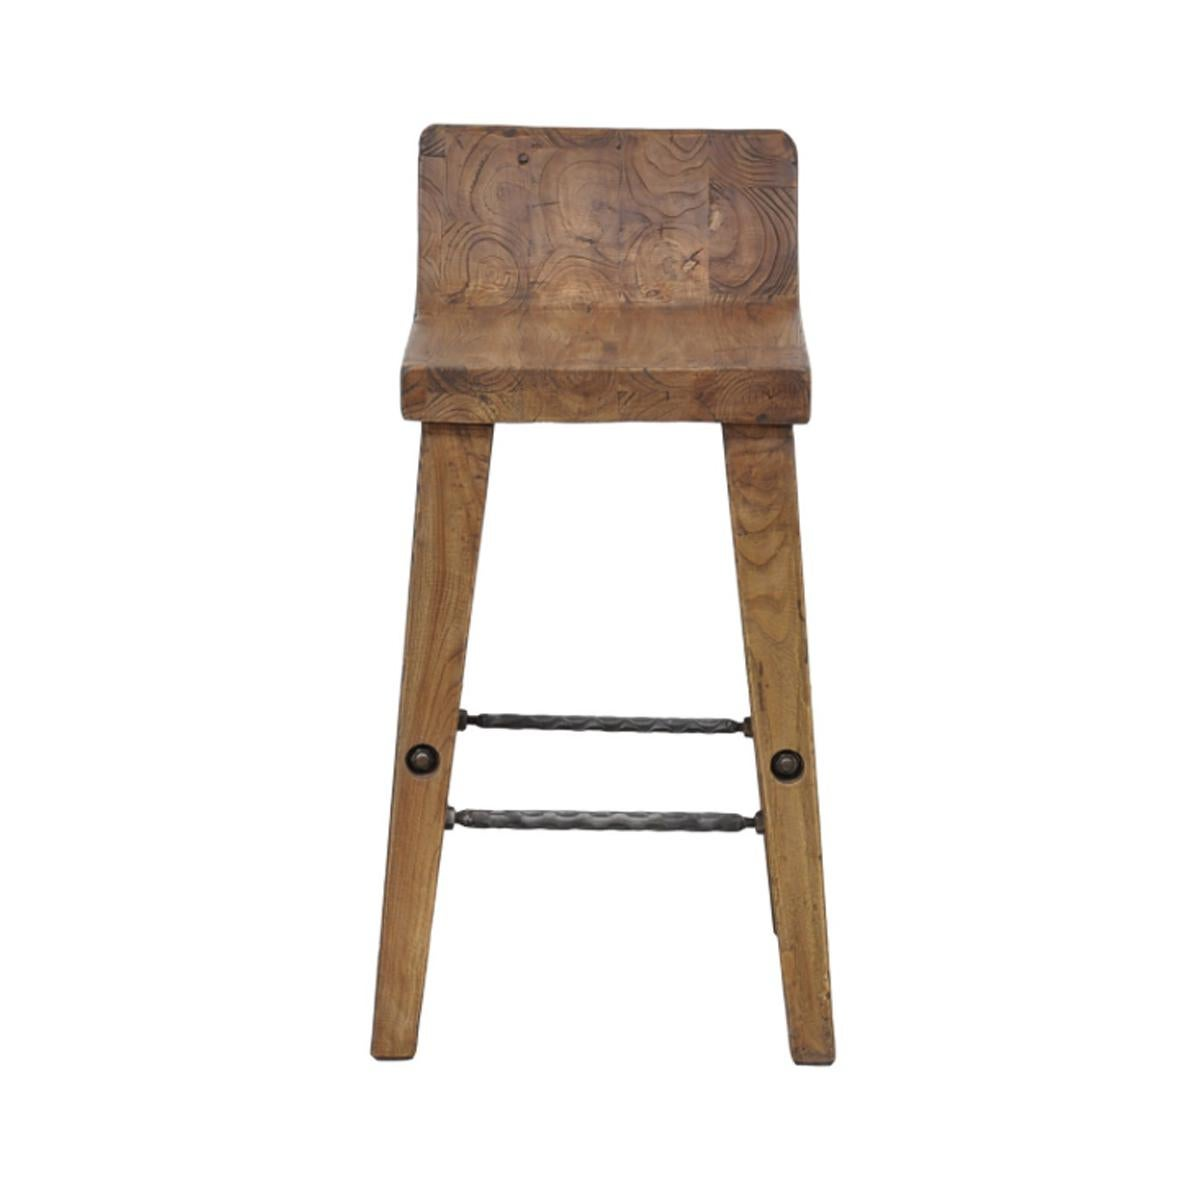 Teak Wood Amp Iron Bar Stool Chairish